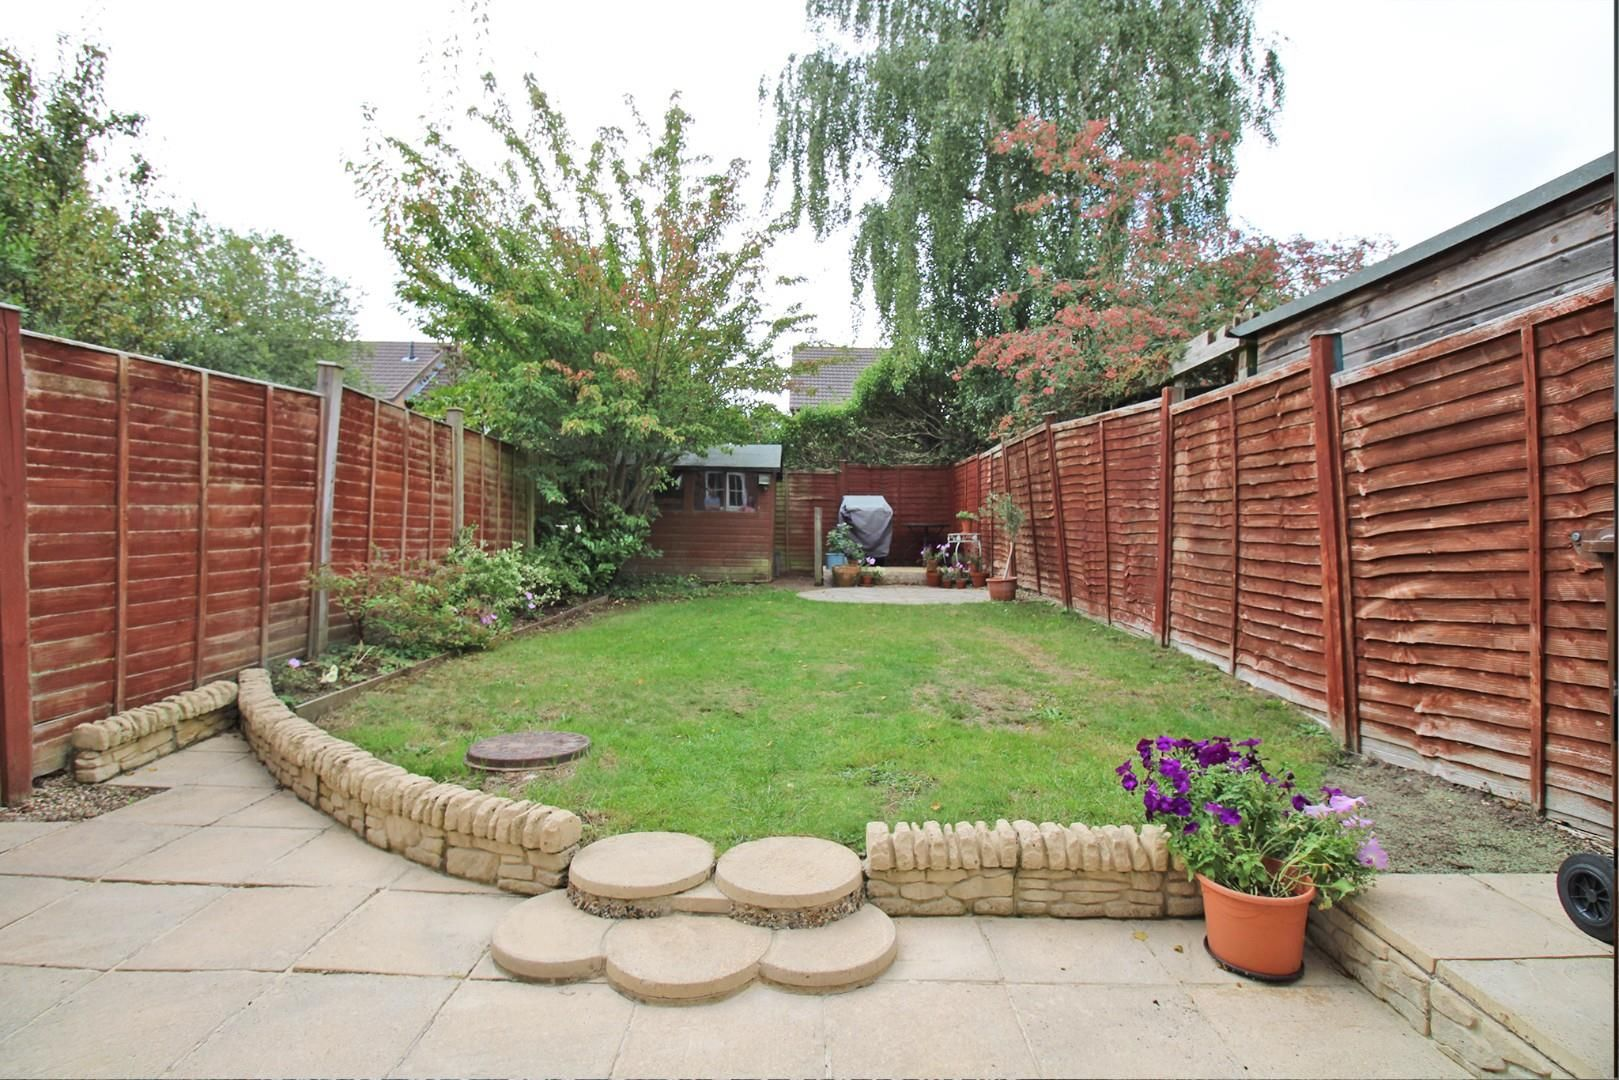 3 bed end of terrace for sale in Lower Earley 10